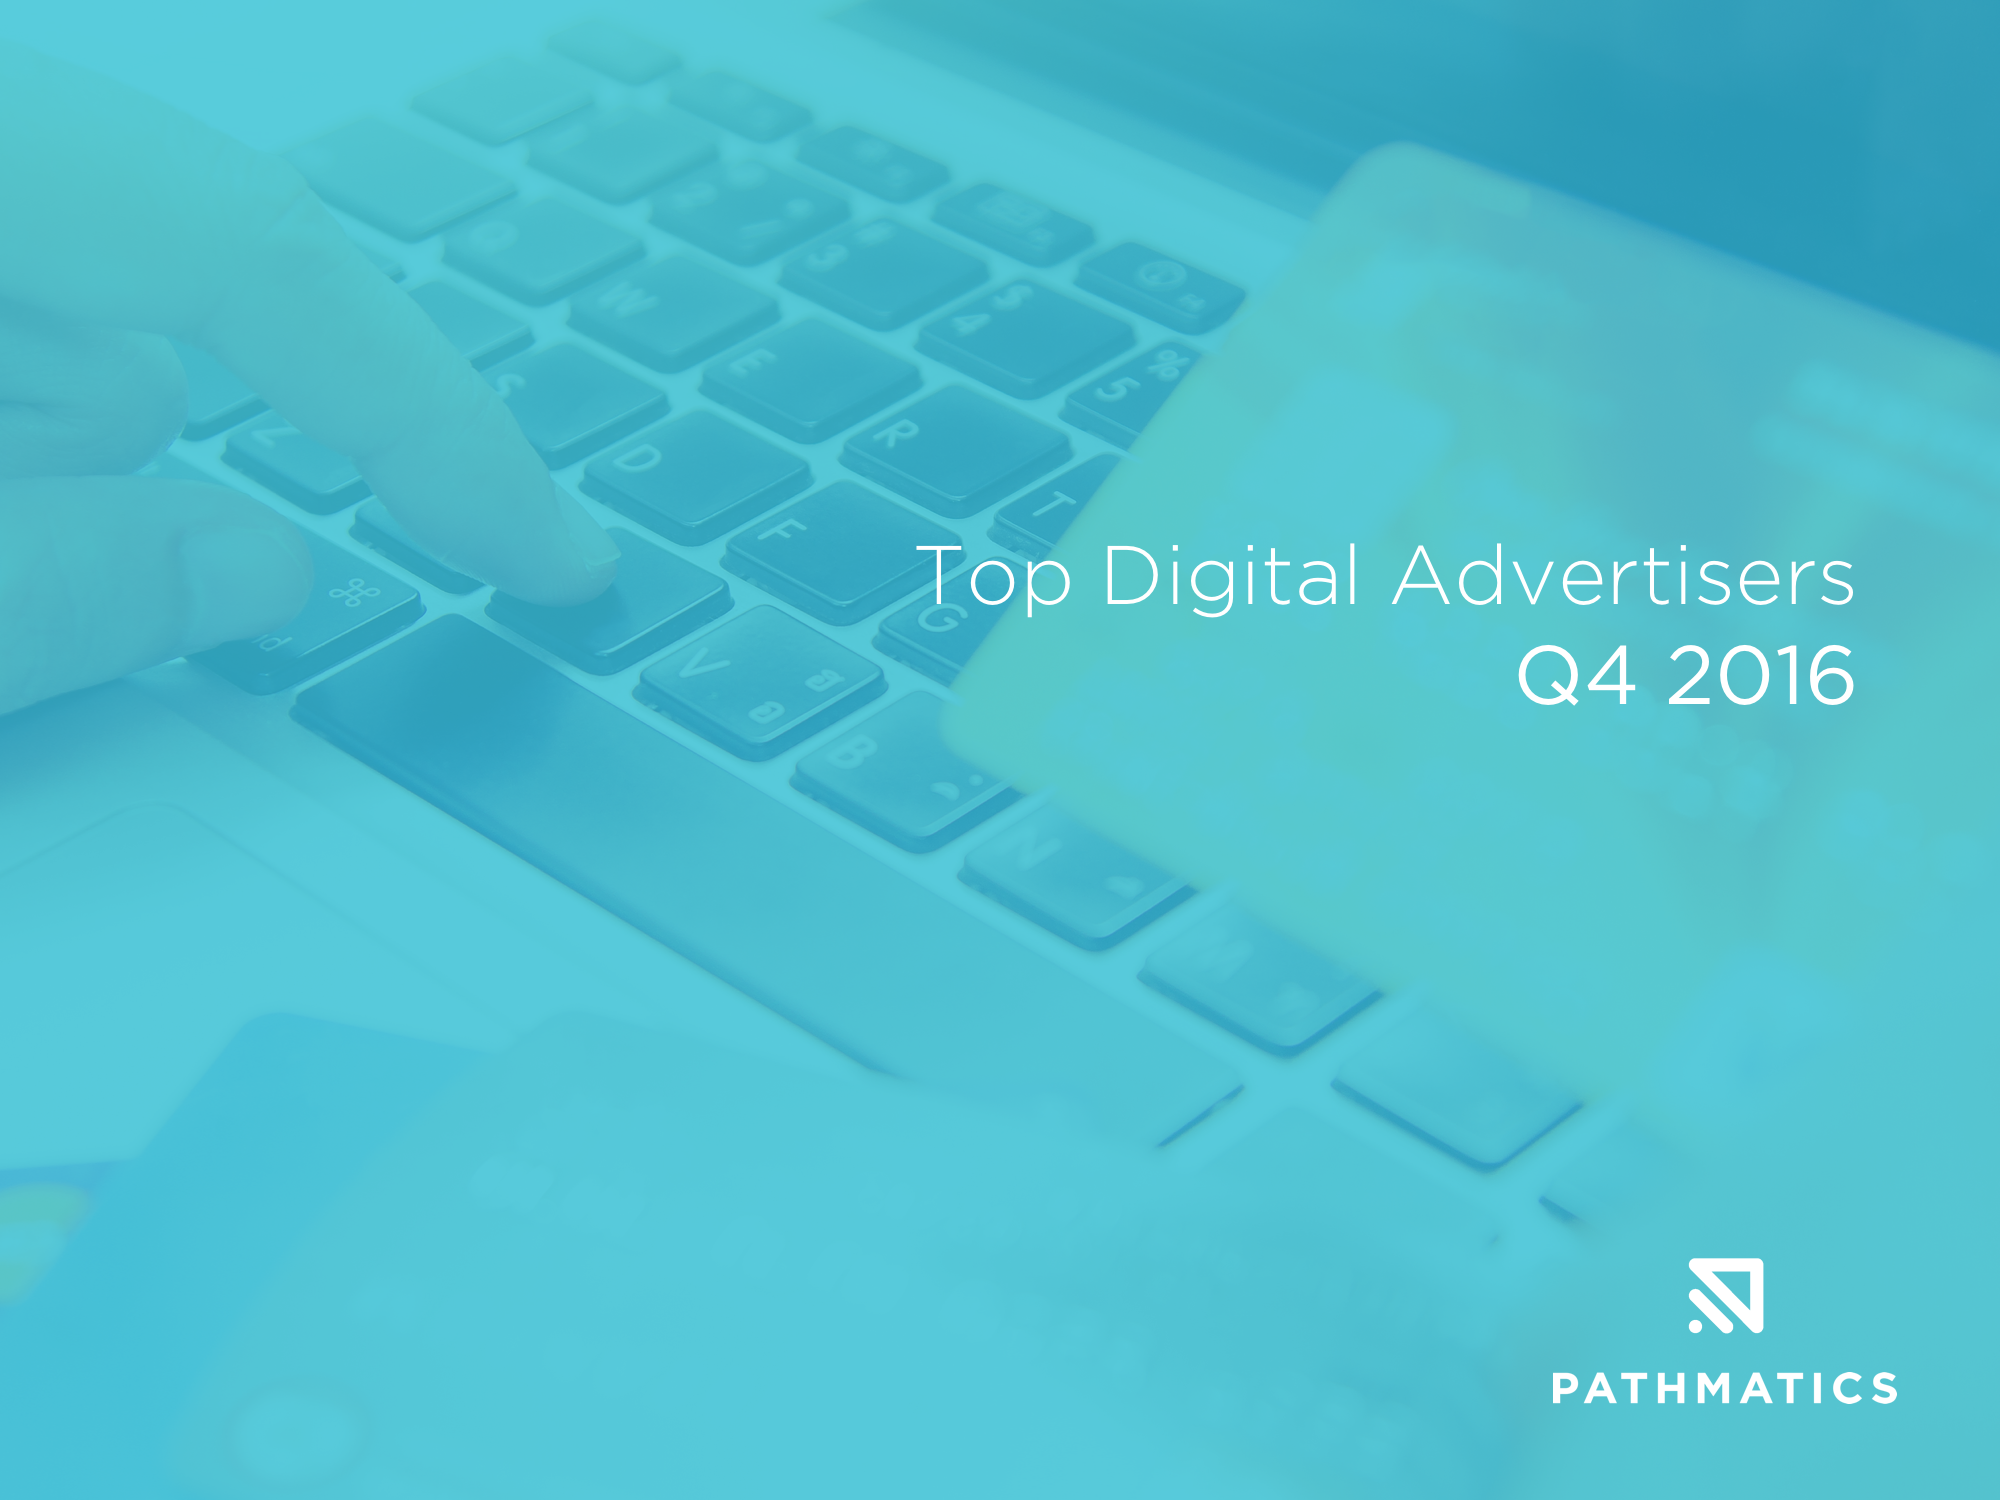 Q4's Top Digital Advertisers 2016 - Featured Image